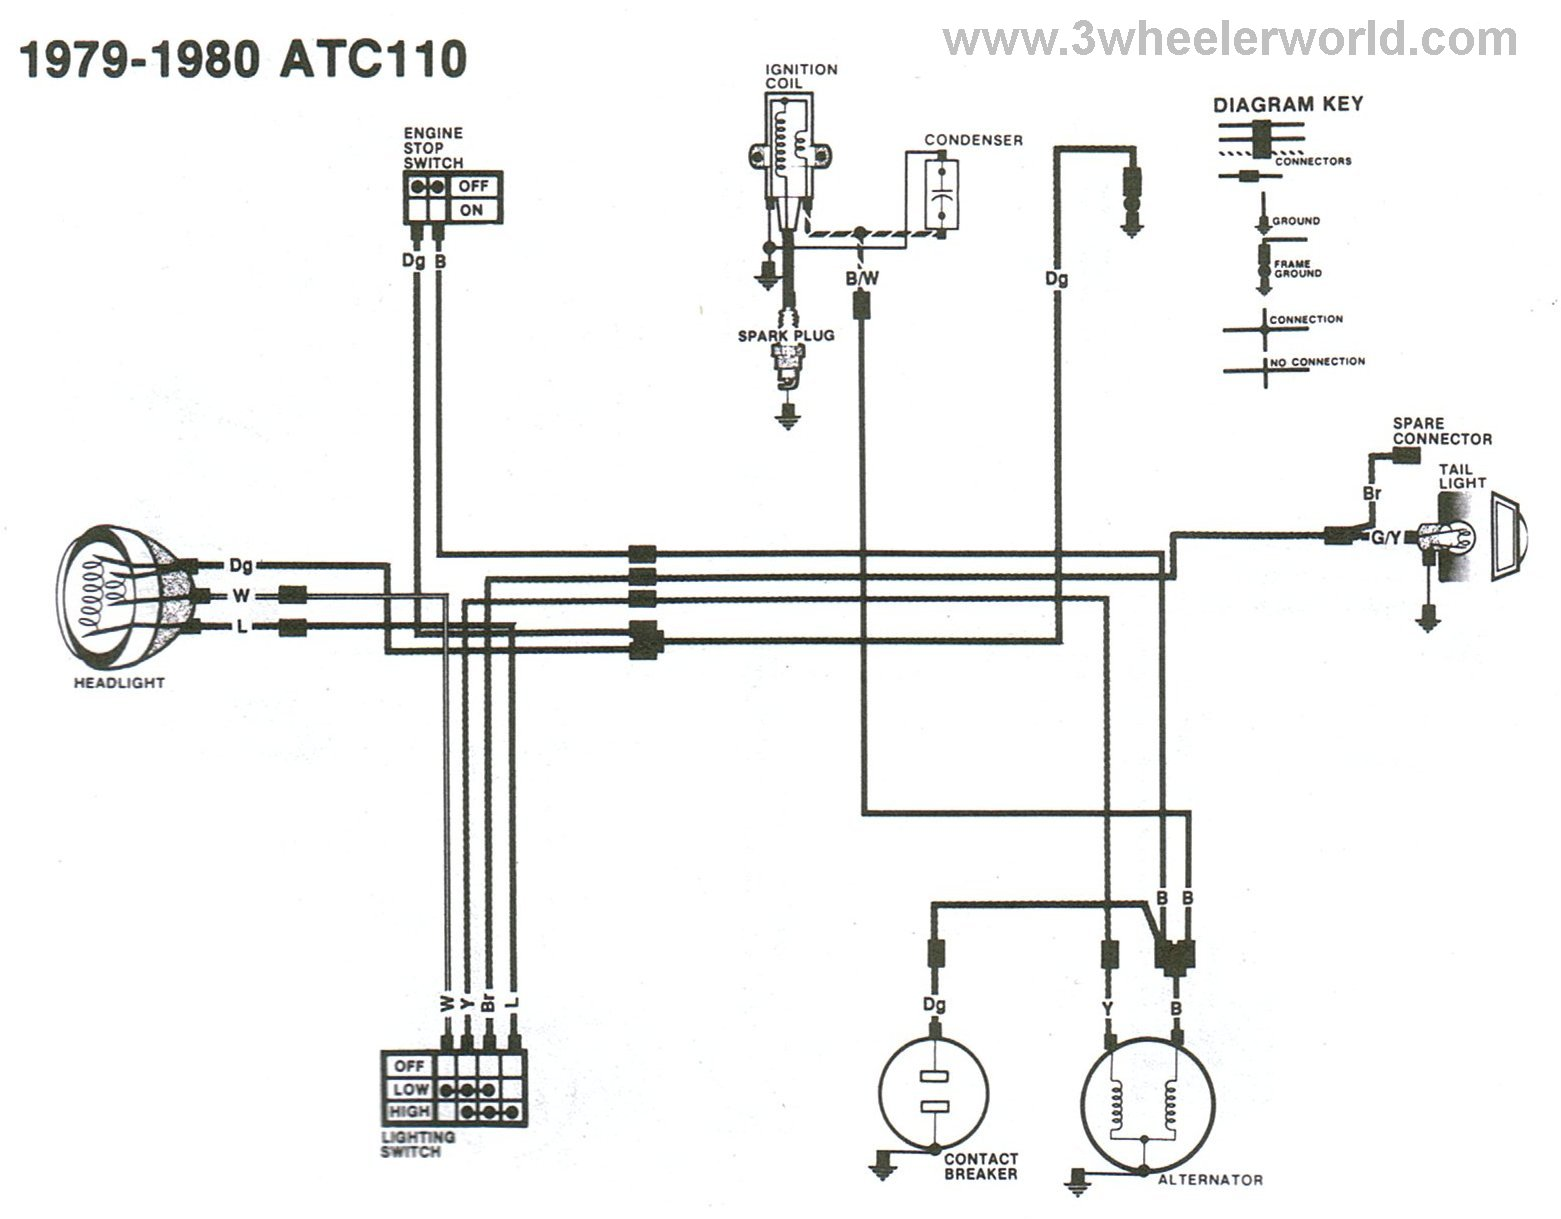 ATC110x79Thru80 3 wheeler world tech help honda wiring diagrams  at honlapkeszites.co